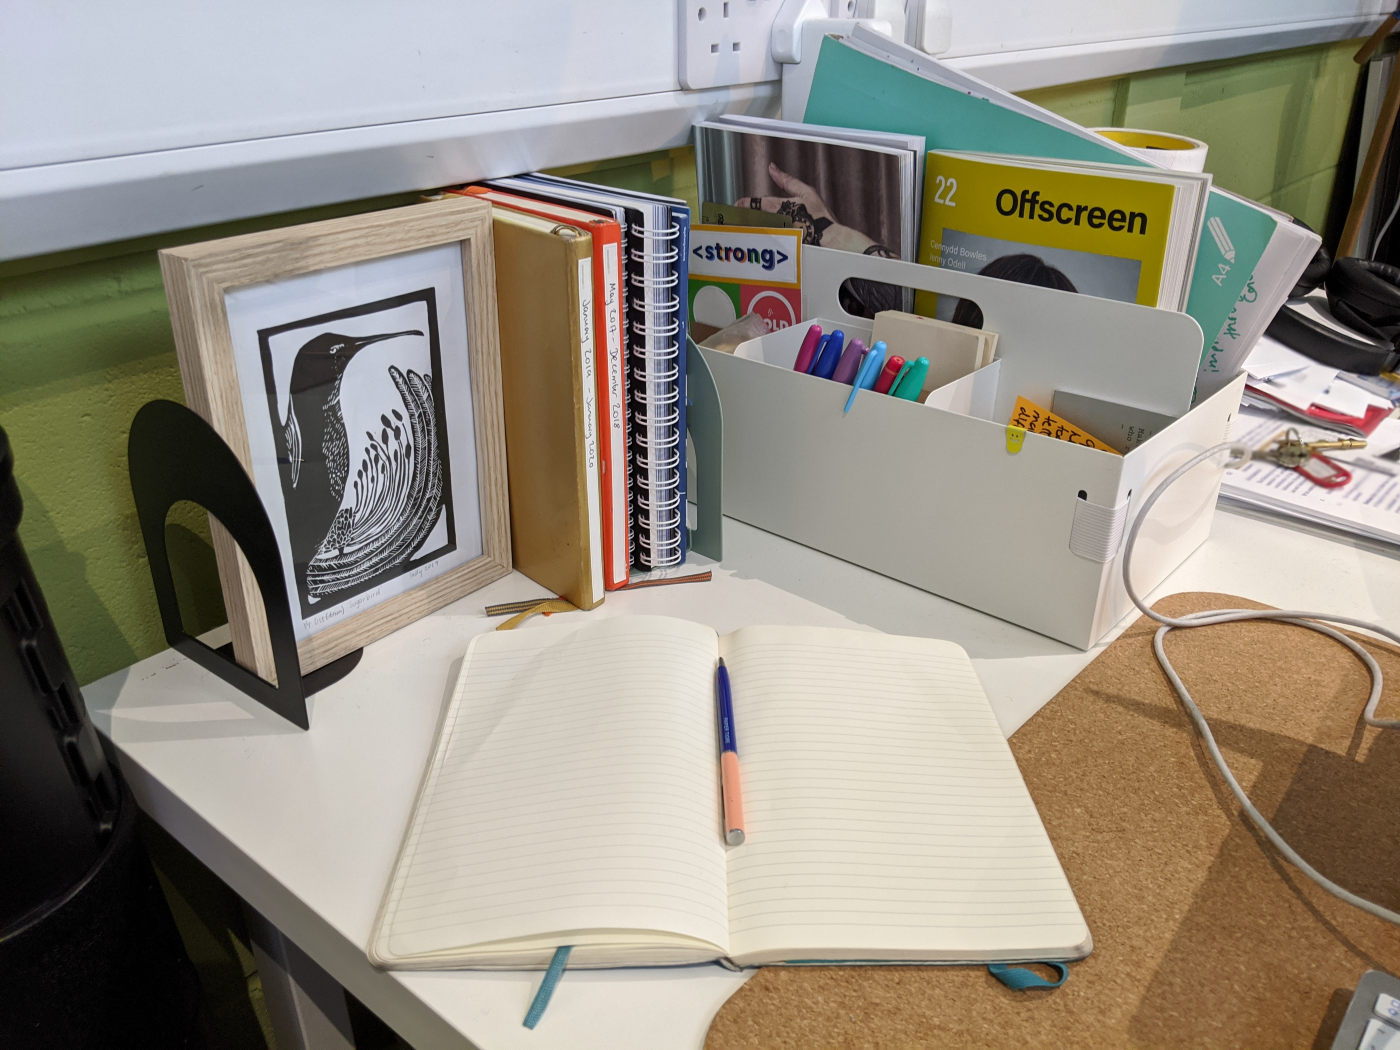 A desk with a notebook and pen, some books, a picture and a toolbox full of stationery.